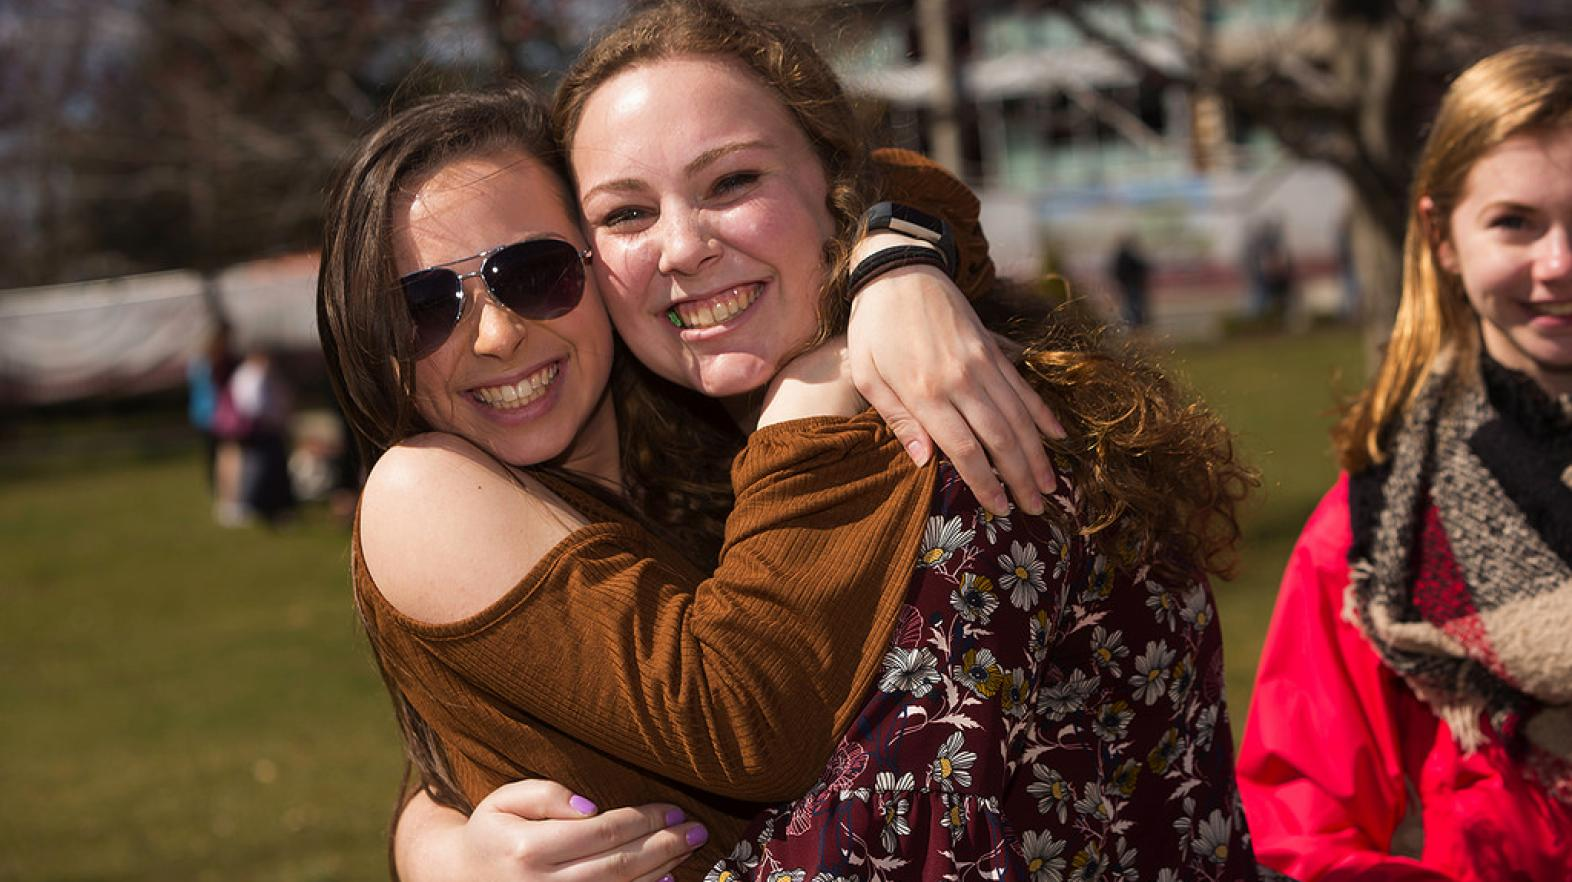 Friends hugging at Springfield College